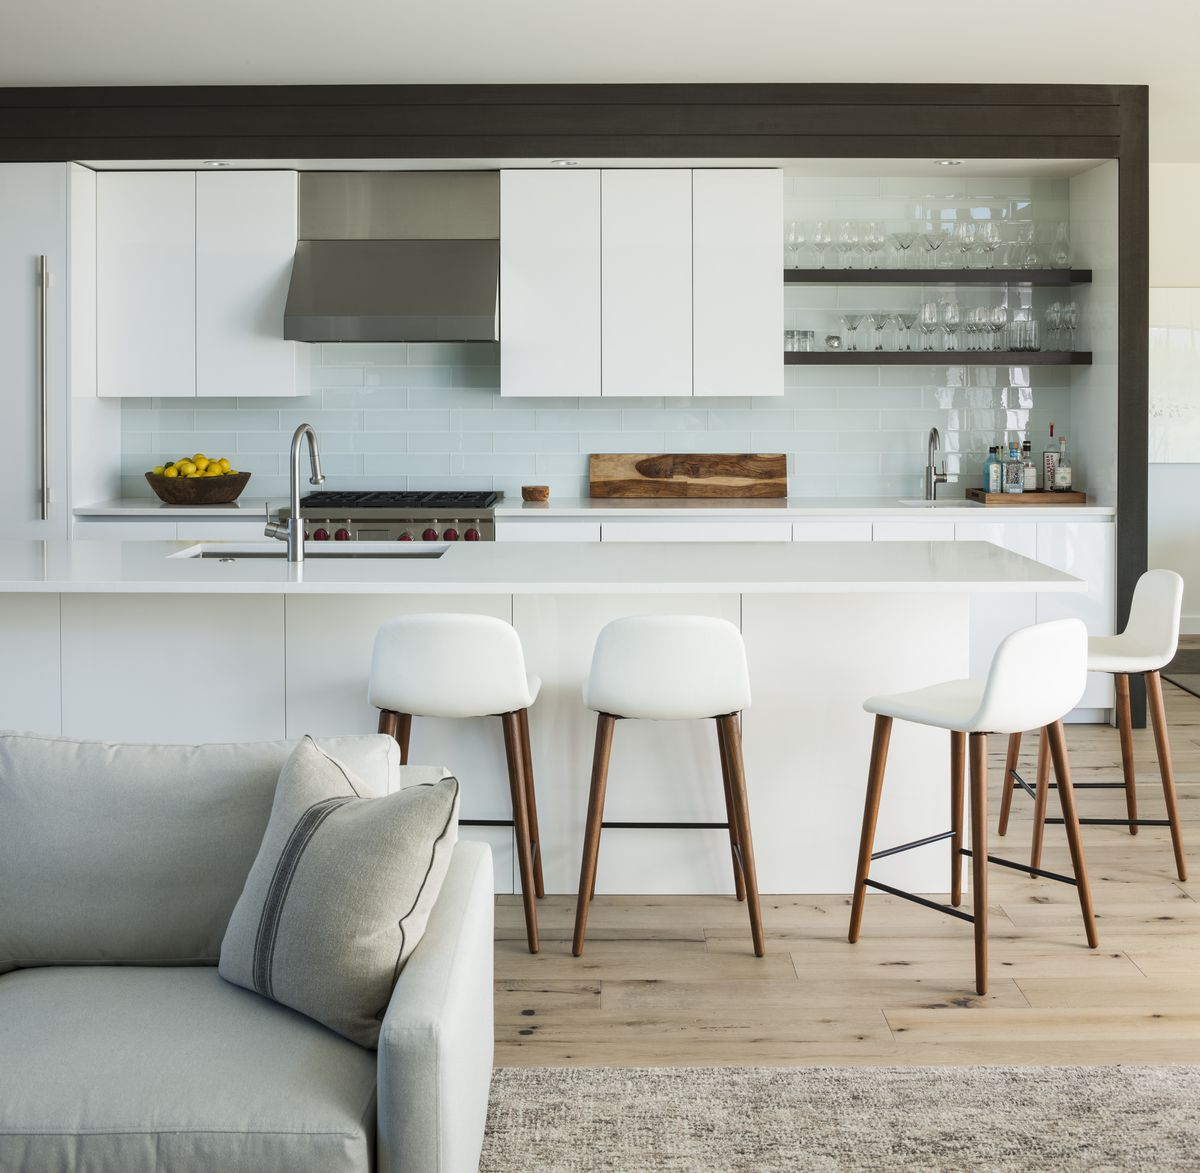 Kitchen with white barstools